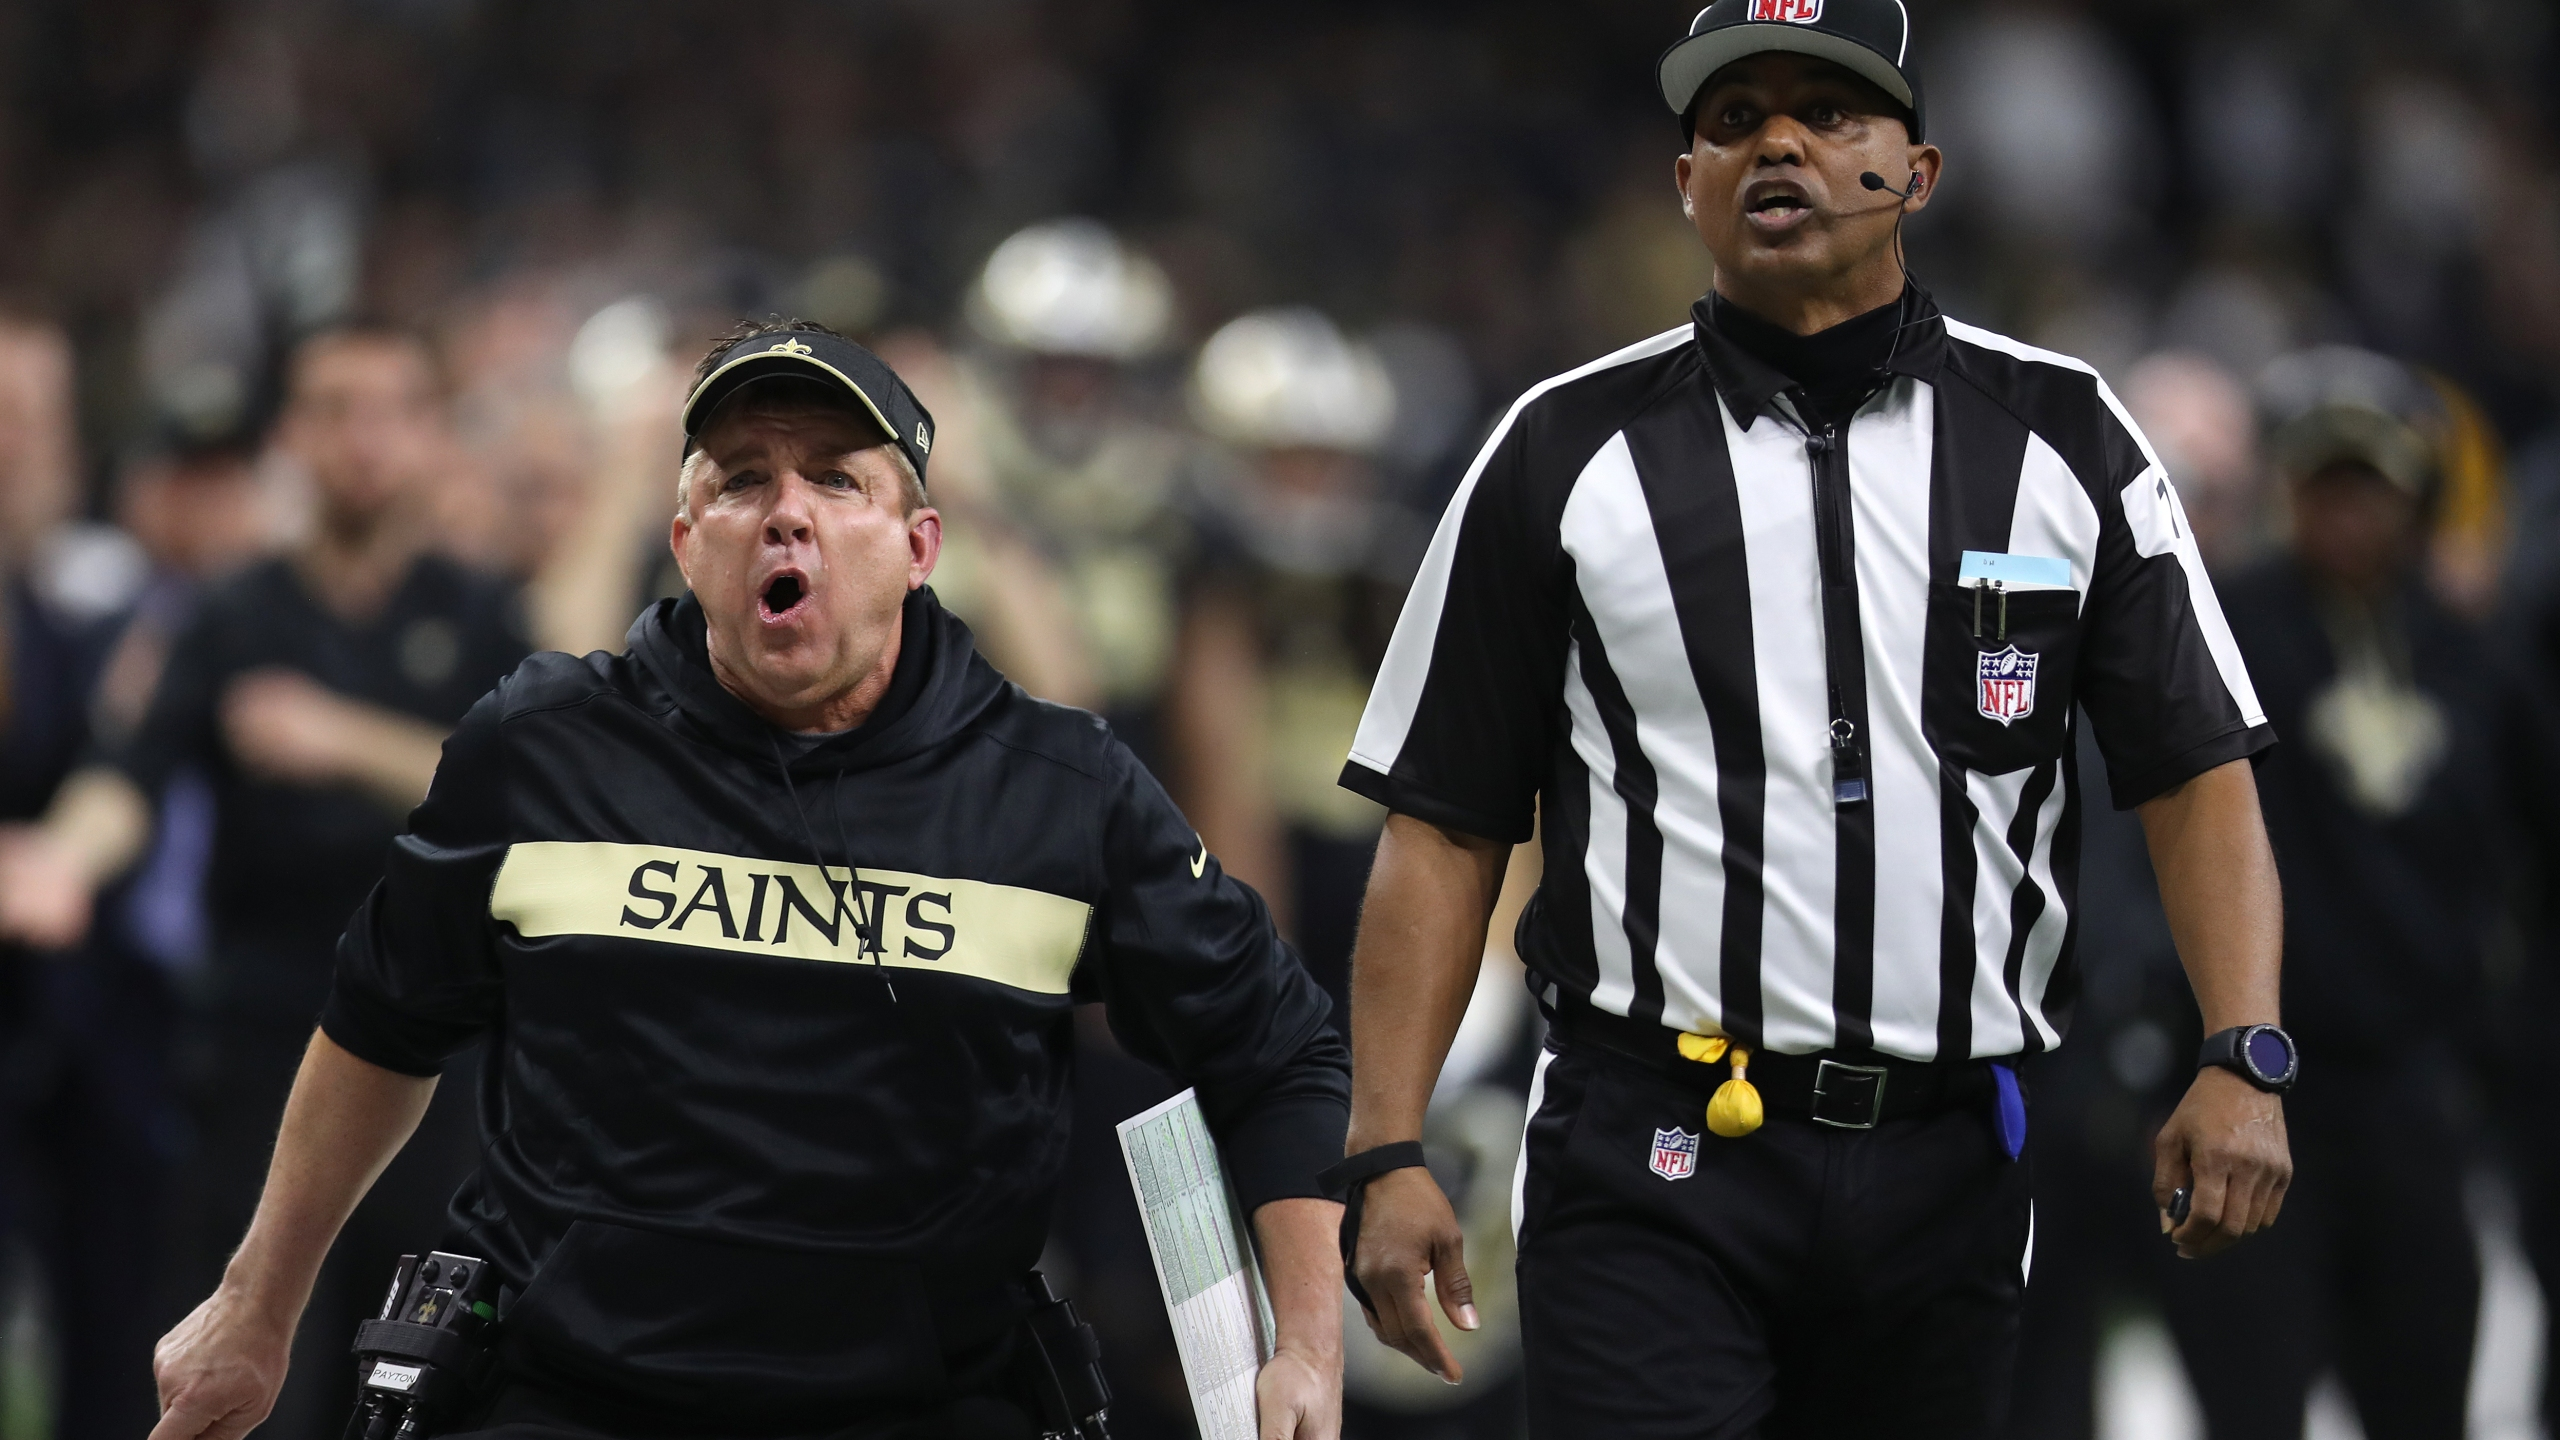 Coach Sean Payton of the New Orleans Saints reacts against the Los Angeles Rams during the fourth quarter in the NFC Championship game at the Mercedes-Benz Superdome on Jan. 20, 2019 in New Orleans, Louisiana.(Credit: Chris Graythen/Getty Images)